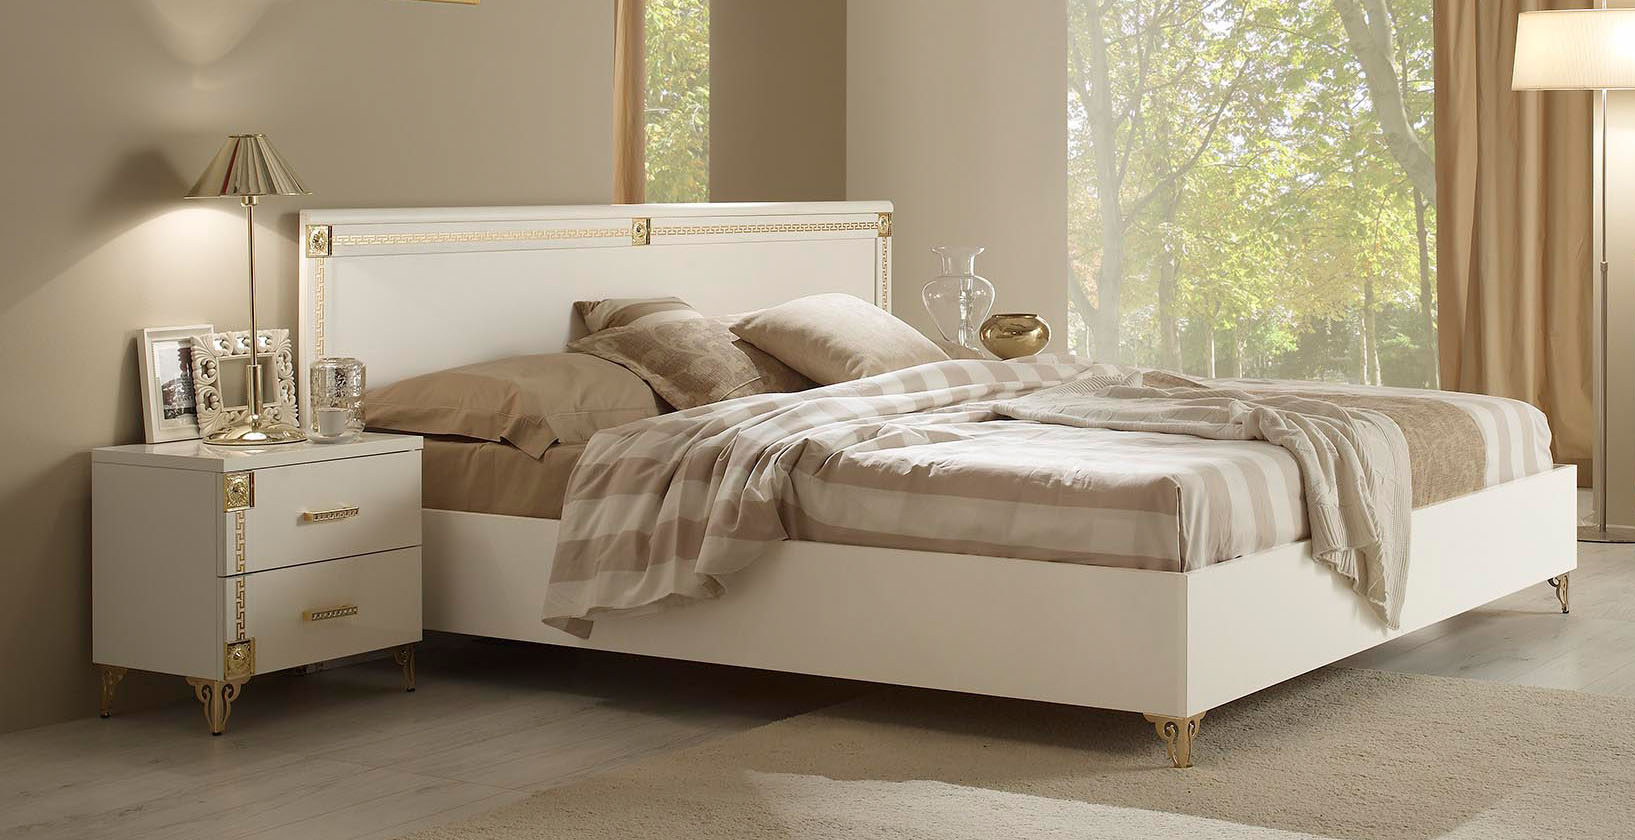 Lacquered Made In Italy Leather High End Platform Bed Virginia